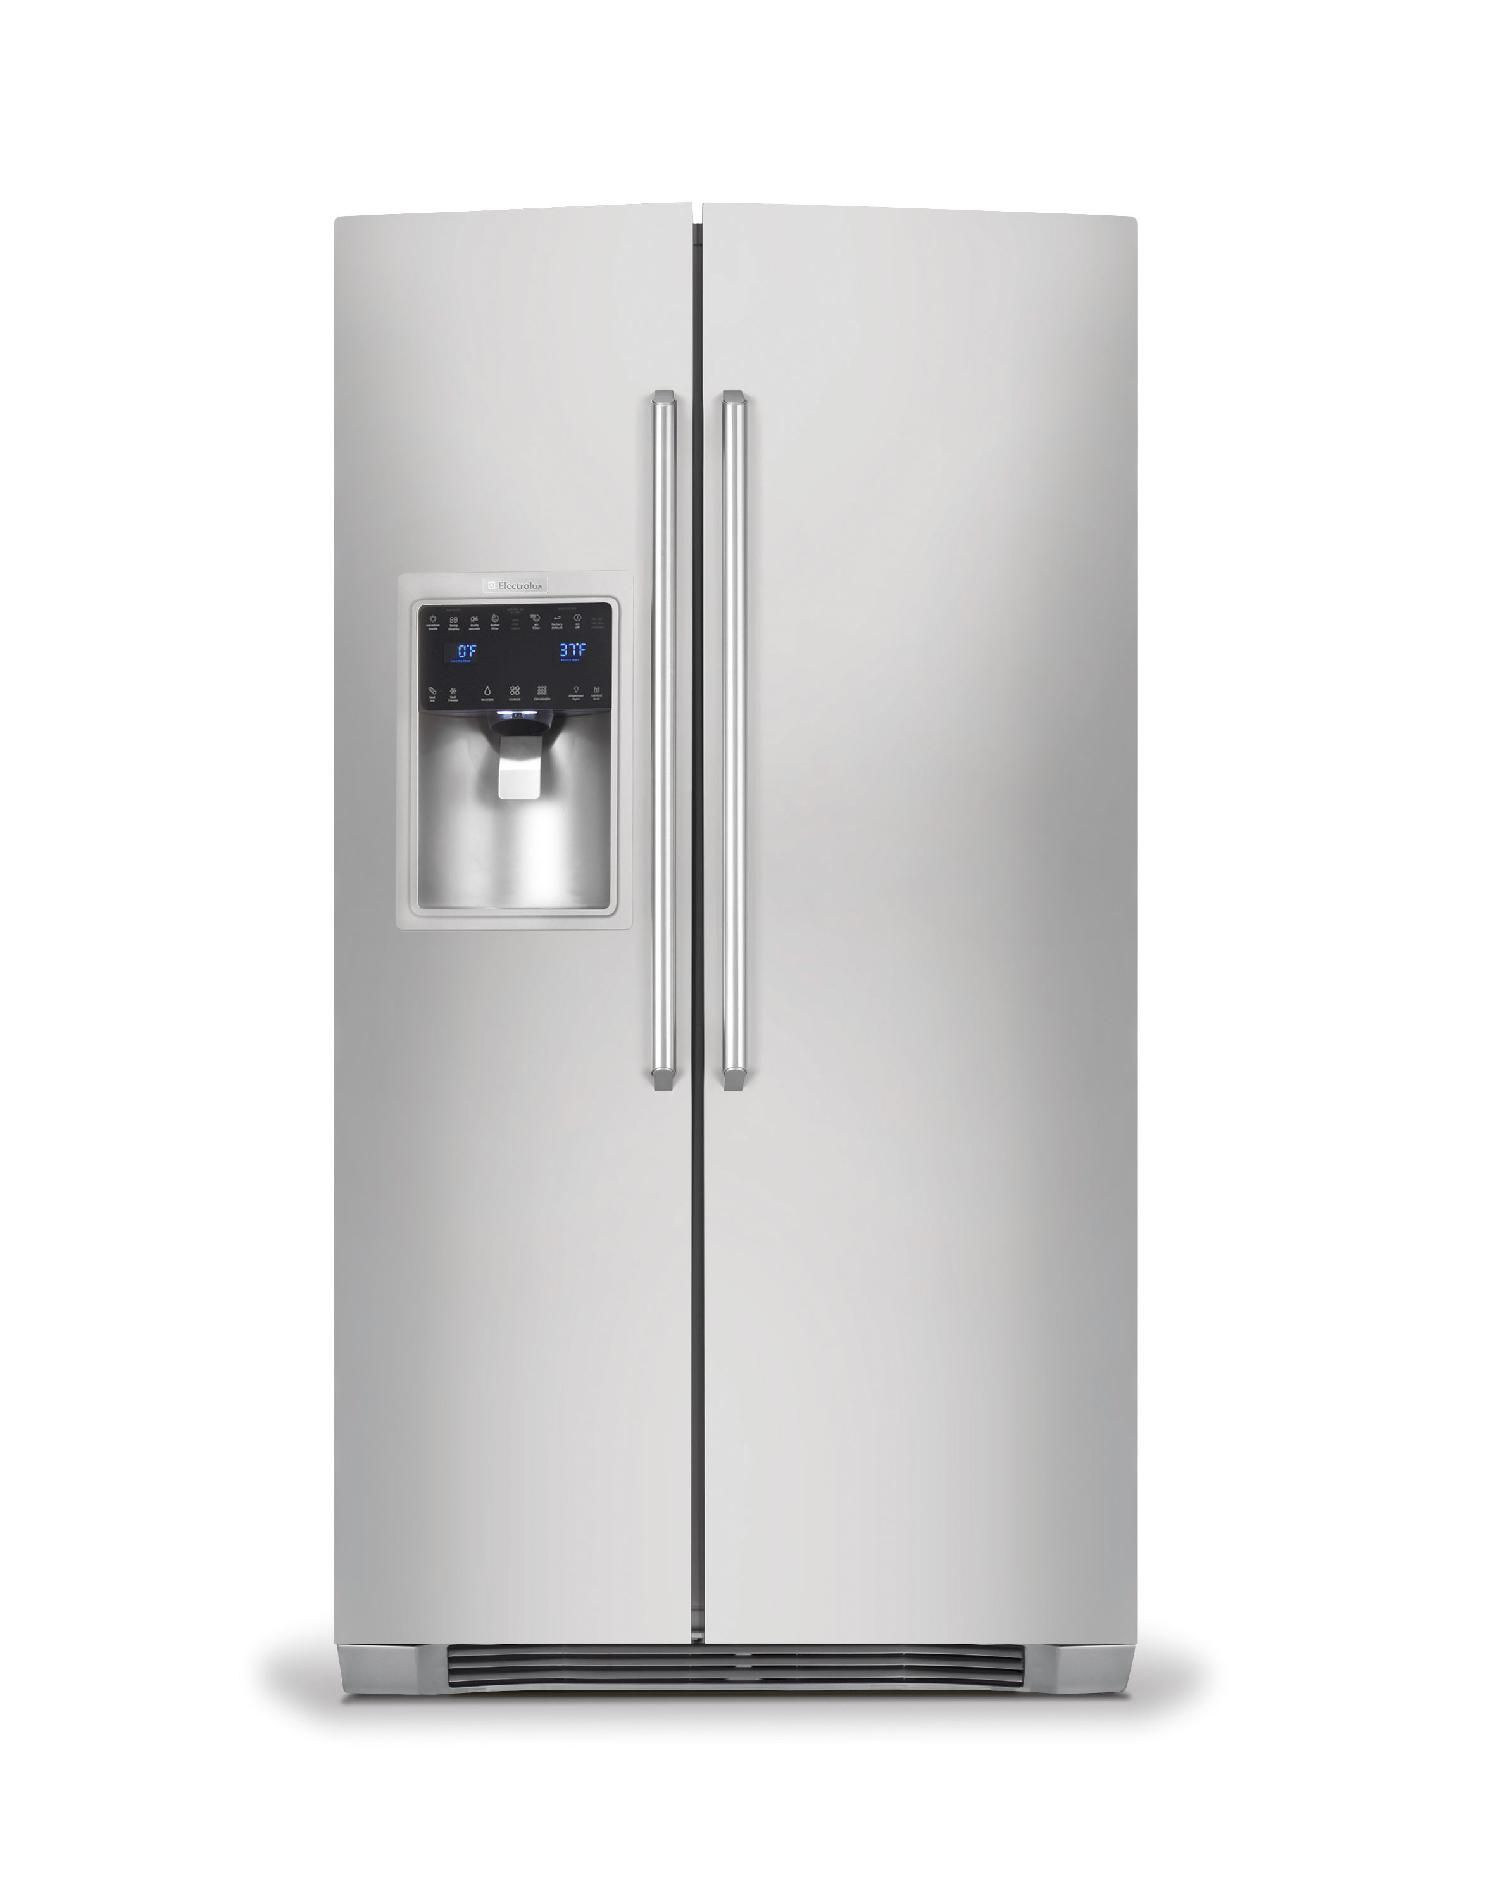 22.6 cu. ft. Counter-Depth Side-By-Side Refrigerator - Stainless Steel